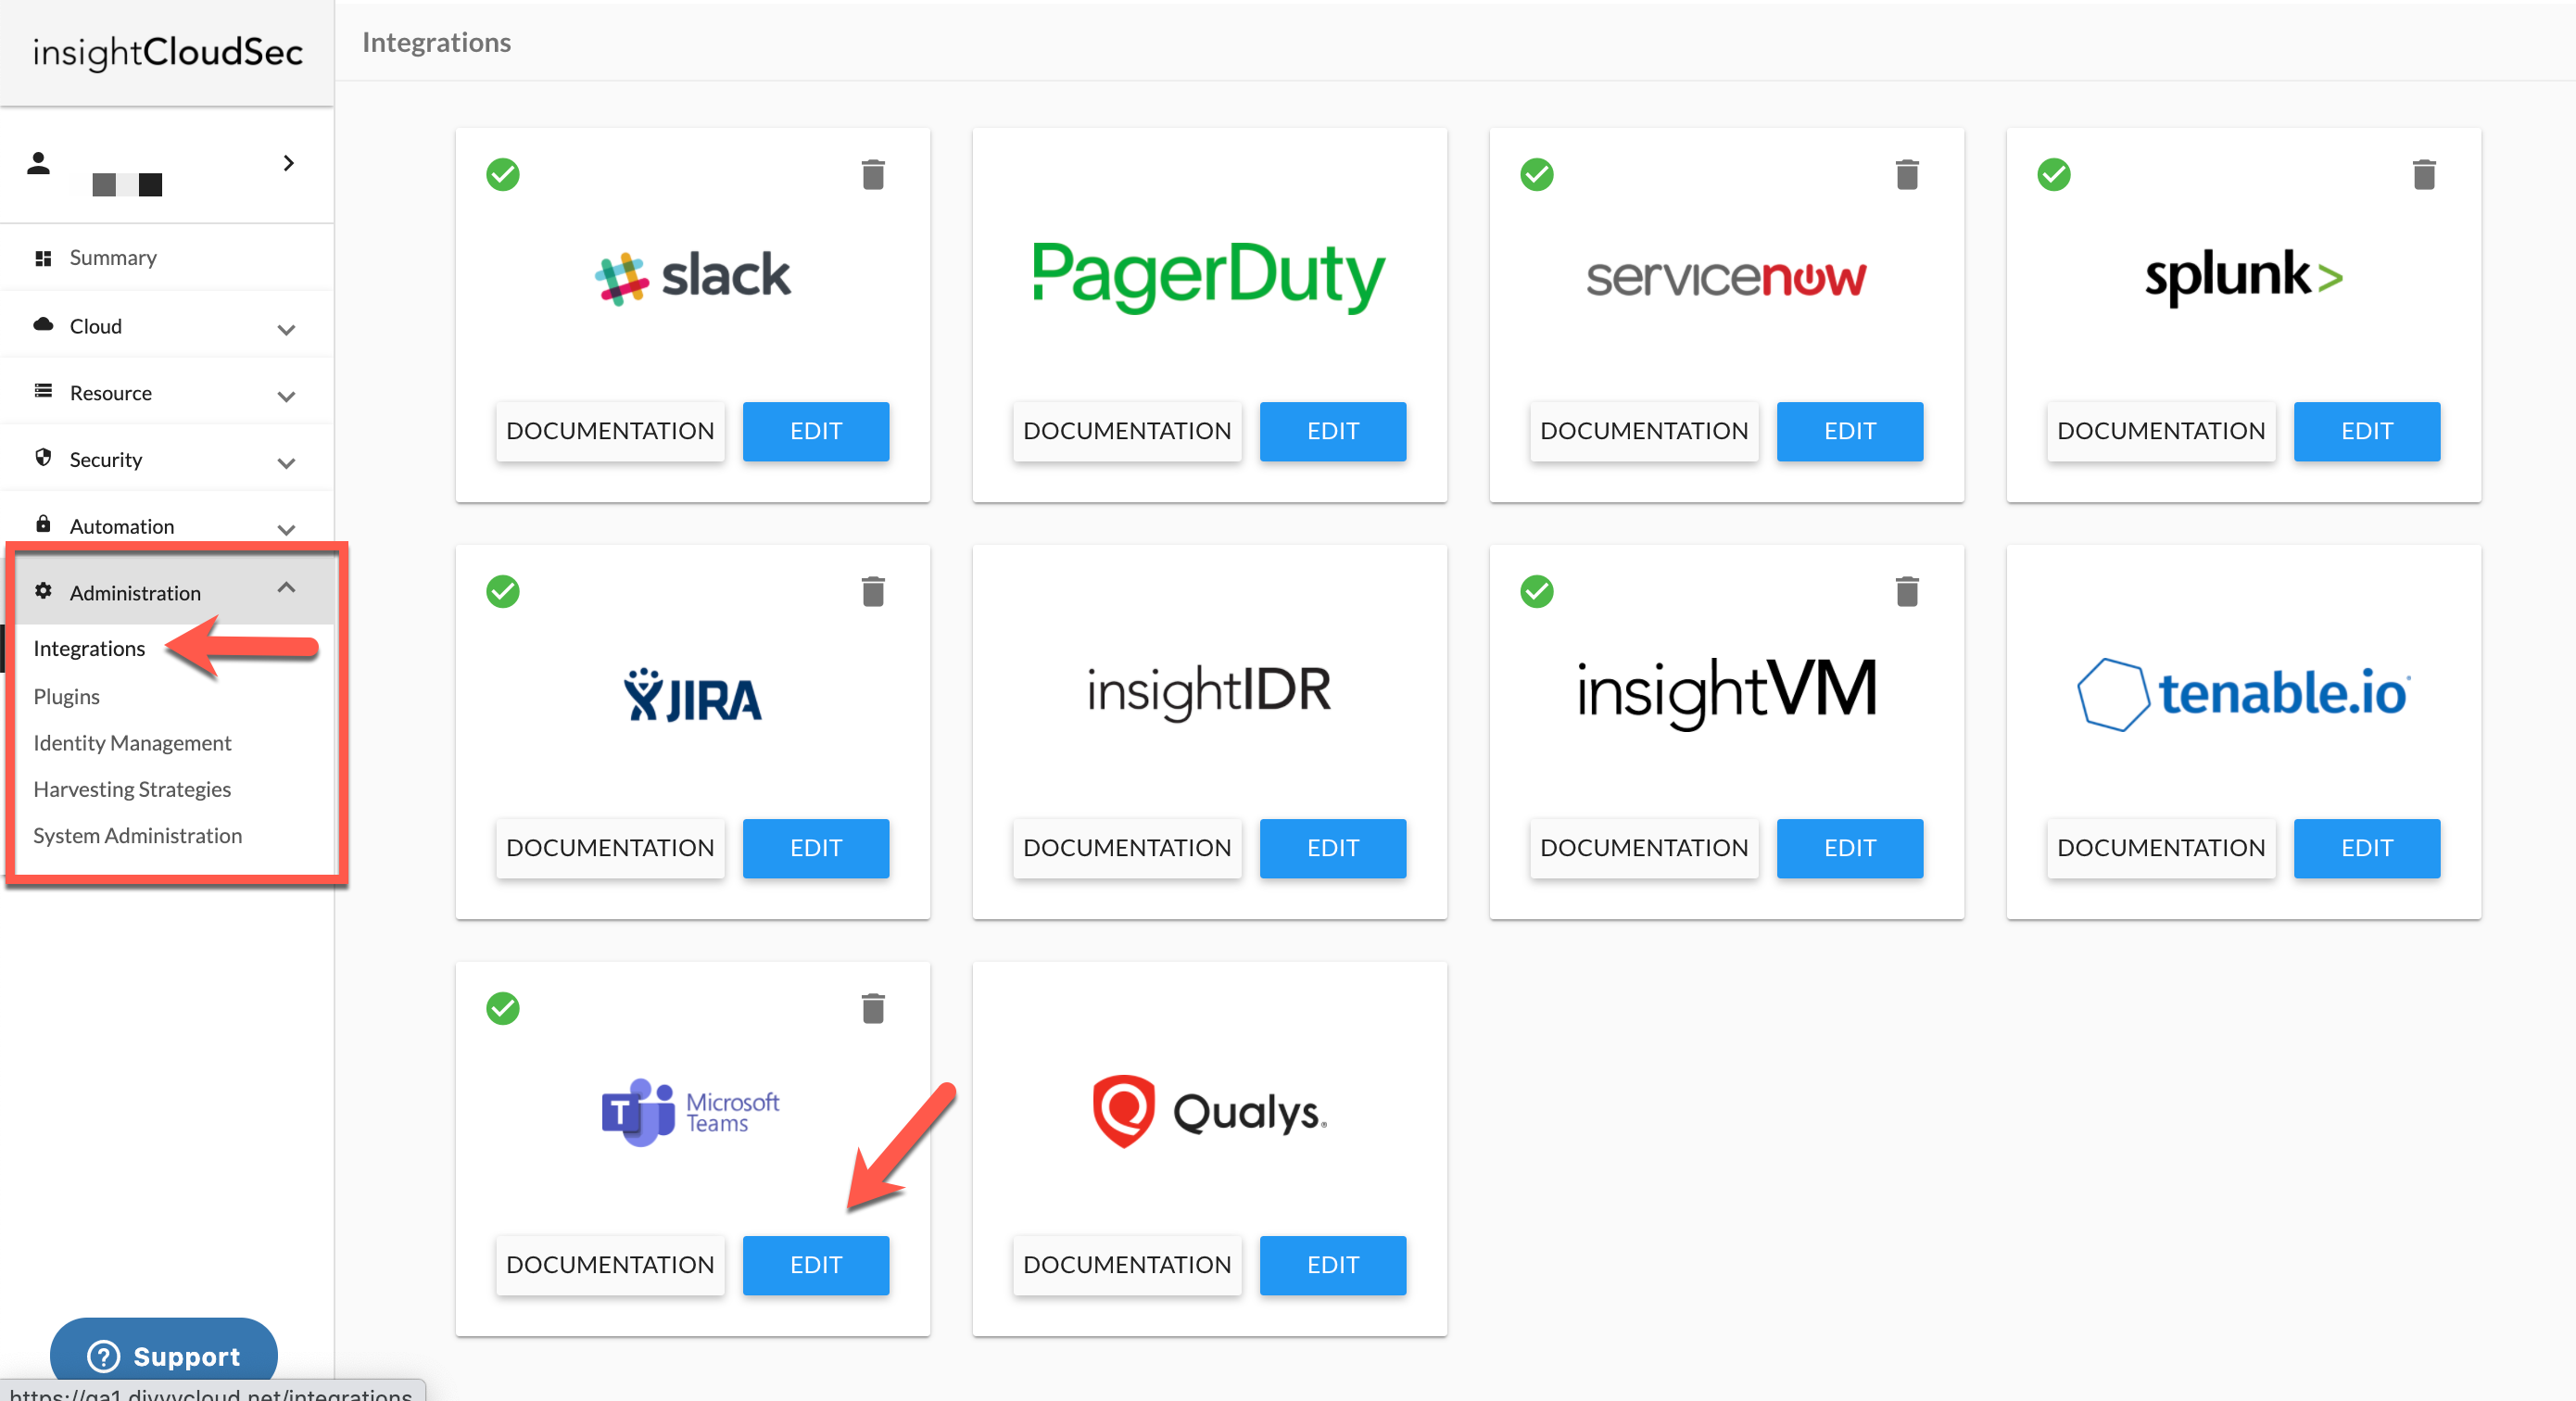 Create a New Microsoft Teams Integration in InsightCloudSec